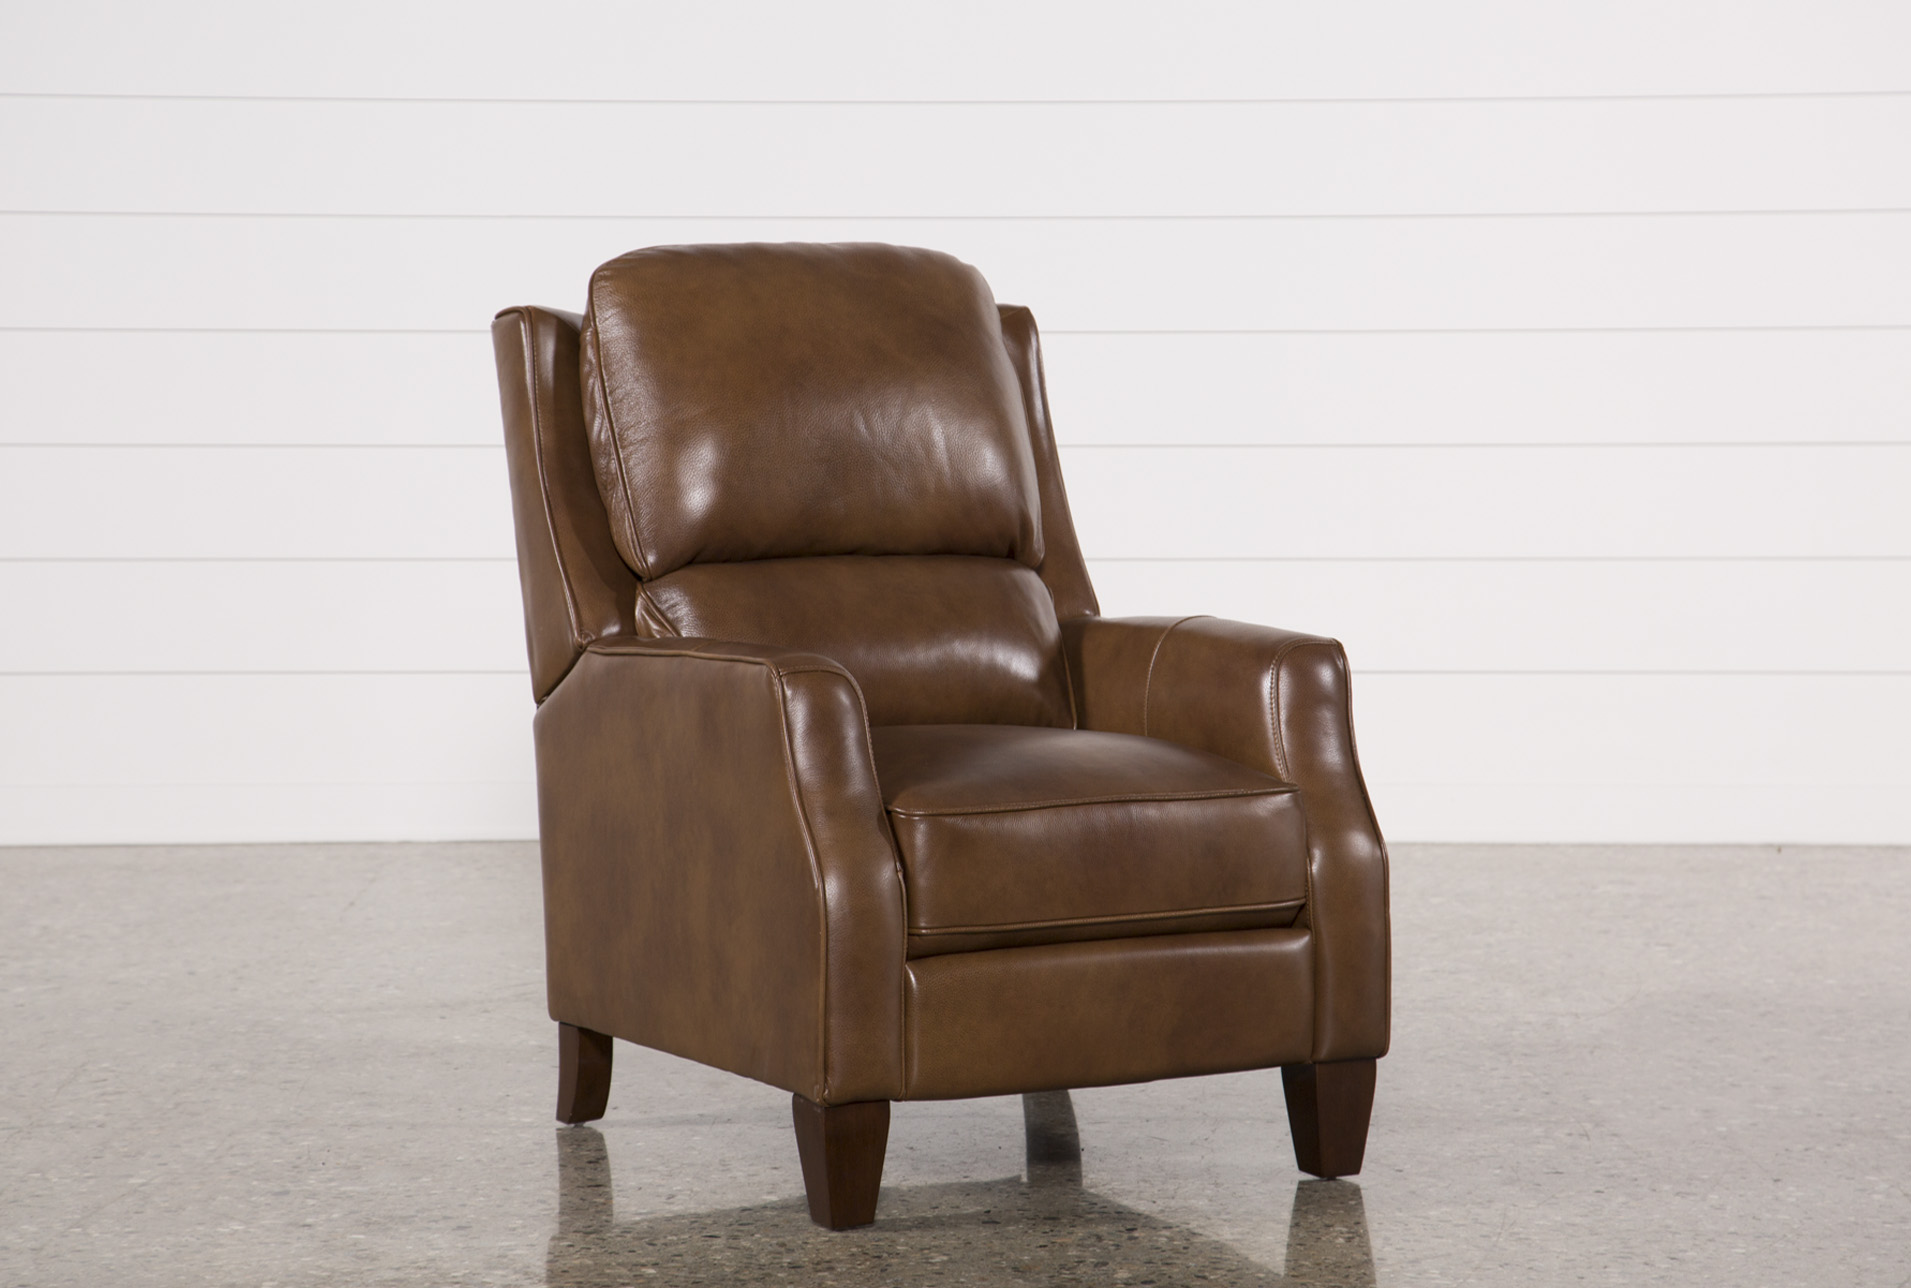 Douglas Caramel Leather High Leg Recliner (Qty: 1) Has Been Successfully  Added To Your Cart.